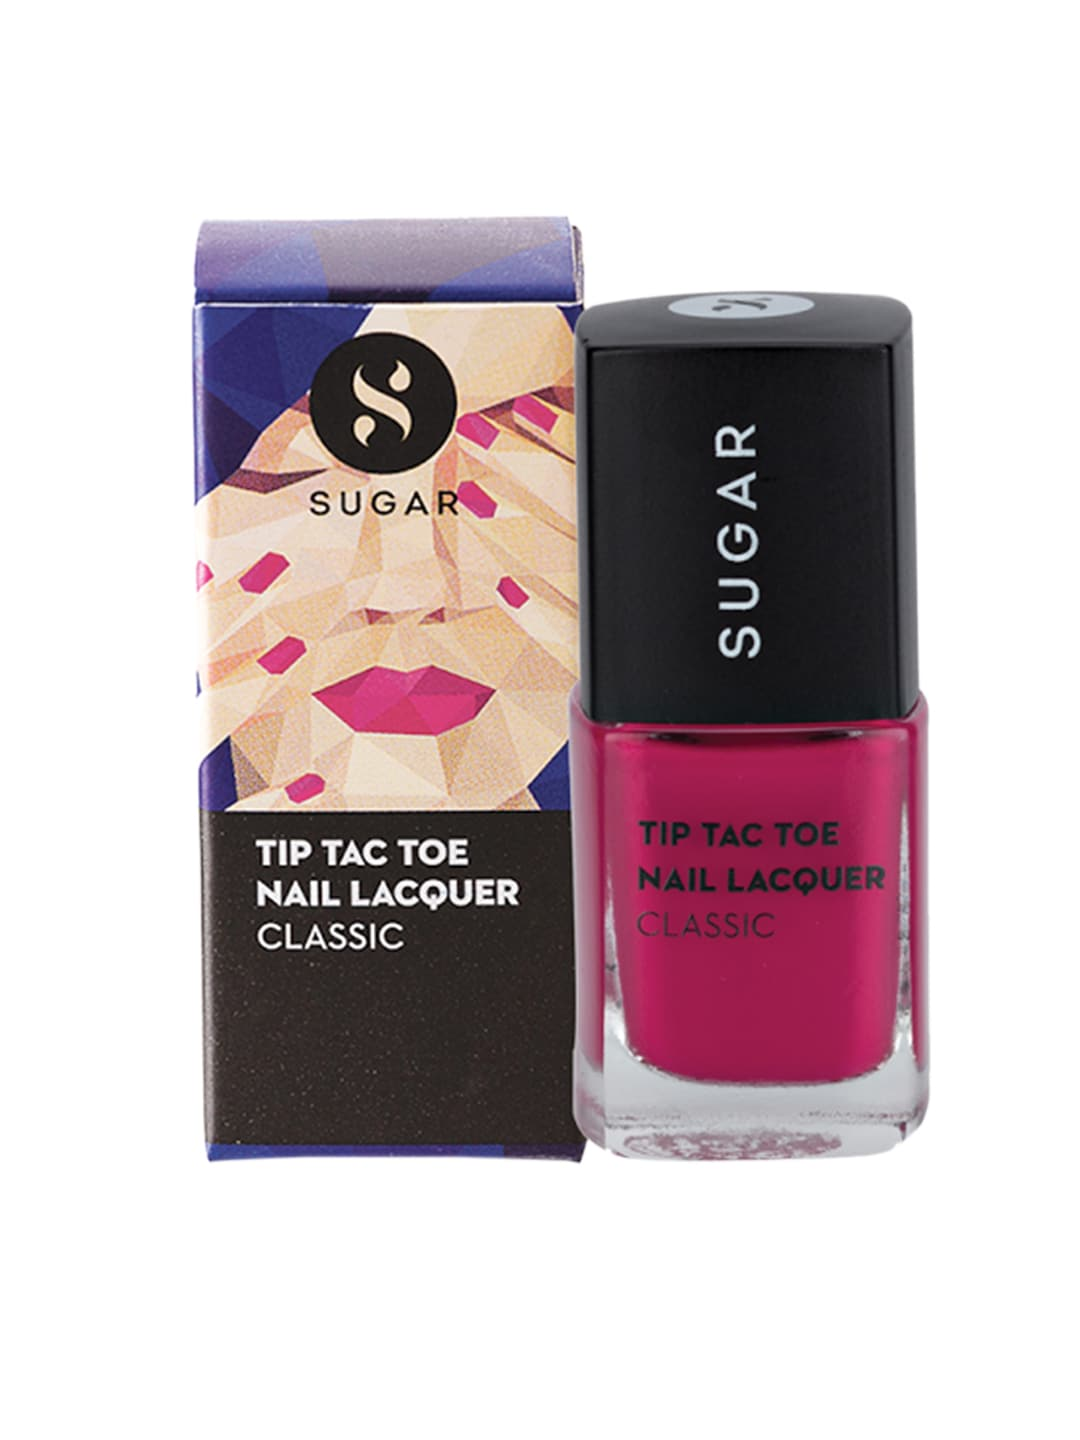 SUGAR Tip Tac Toe Classic Nail Lacquer - 012 Pink Positive image